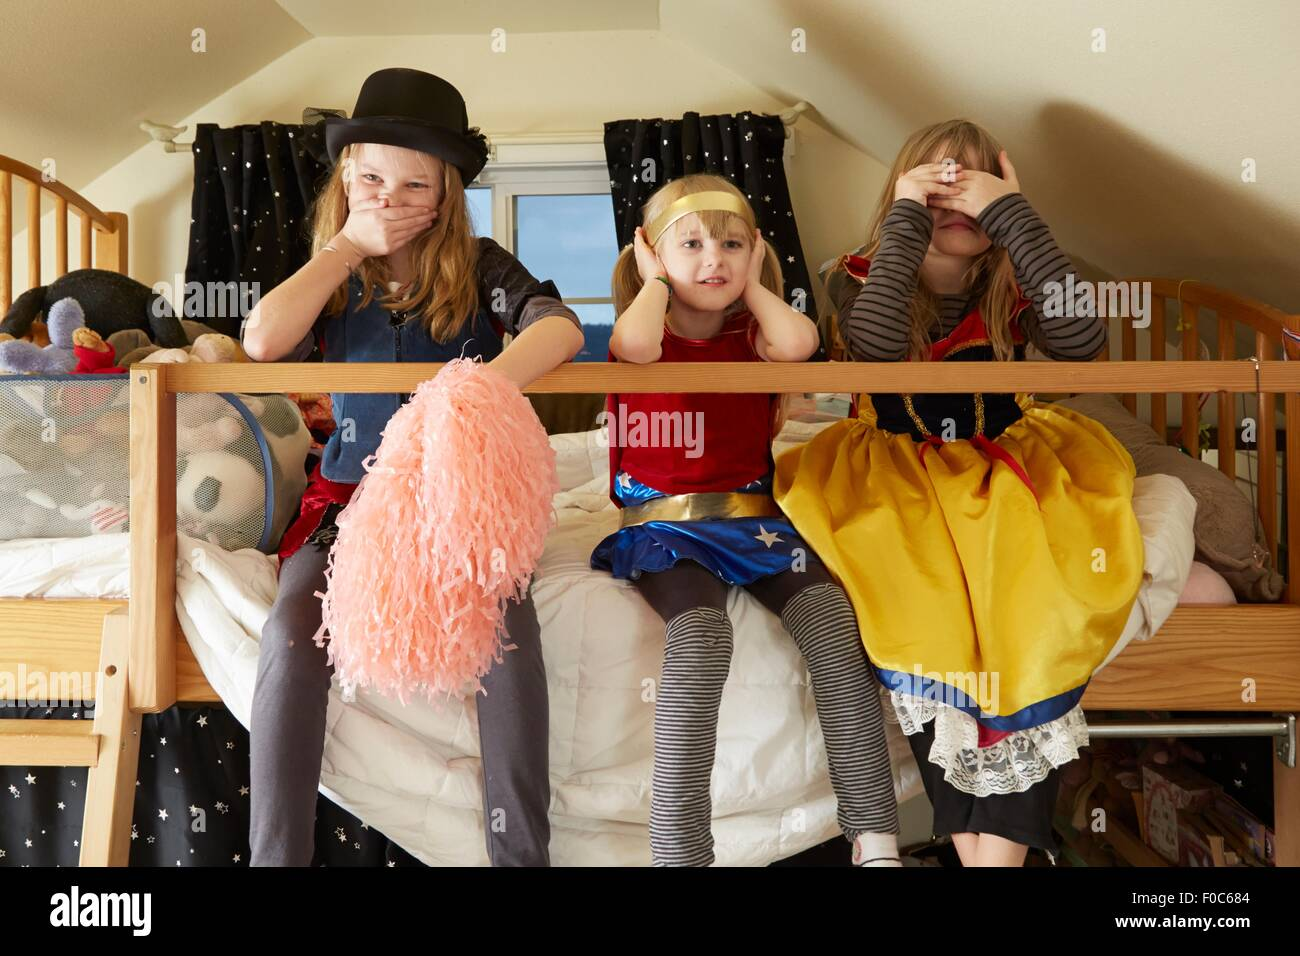 Three sisters, sitting on bed,  wearing fancy dress costumes, covering mouth, ears and eyes - Stock Image